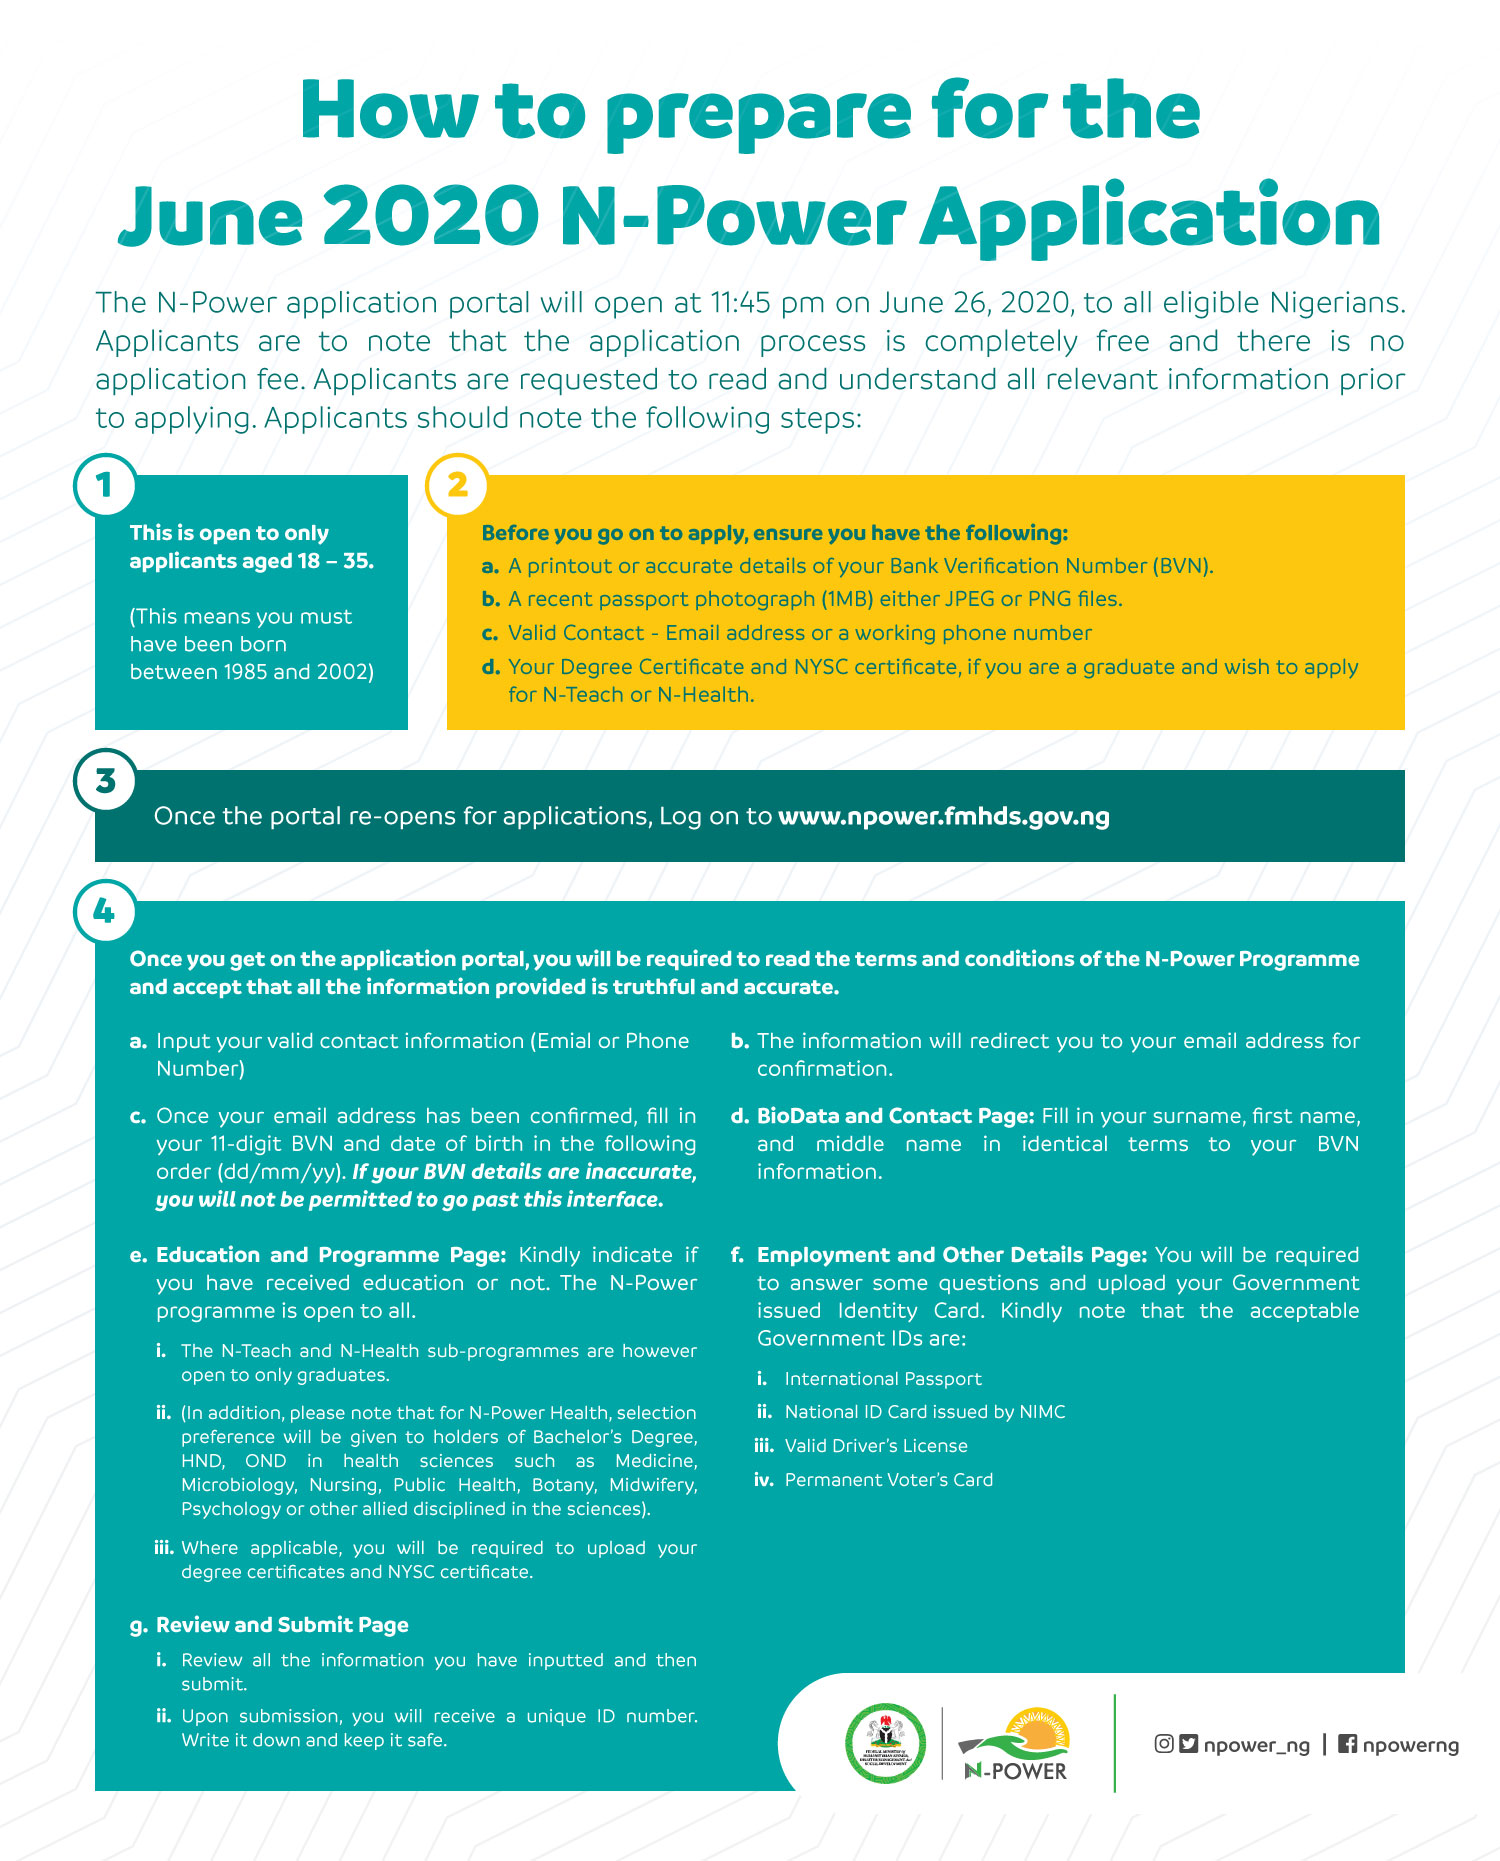 How To Prepare For Npower Application 2020 - All You Need To Apply For Npower Batch C Recruitment